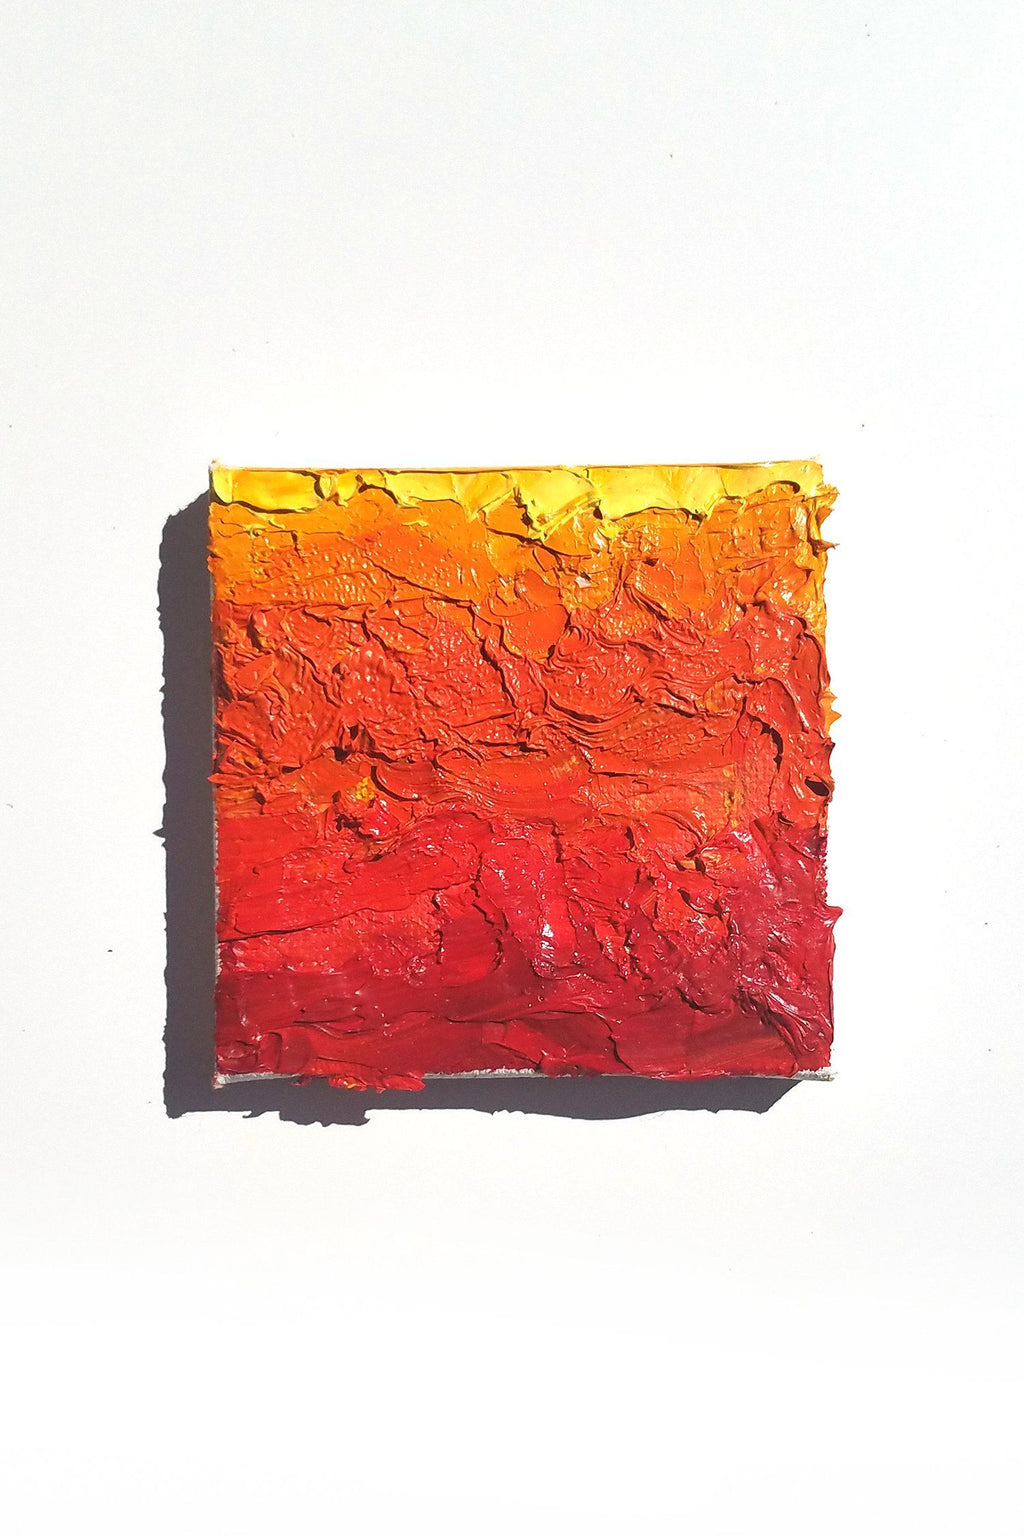 Yellow Orange Red Abstract Contemporary Original Oil Painting by Karen Whitworth - Art of Karen Whitworth